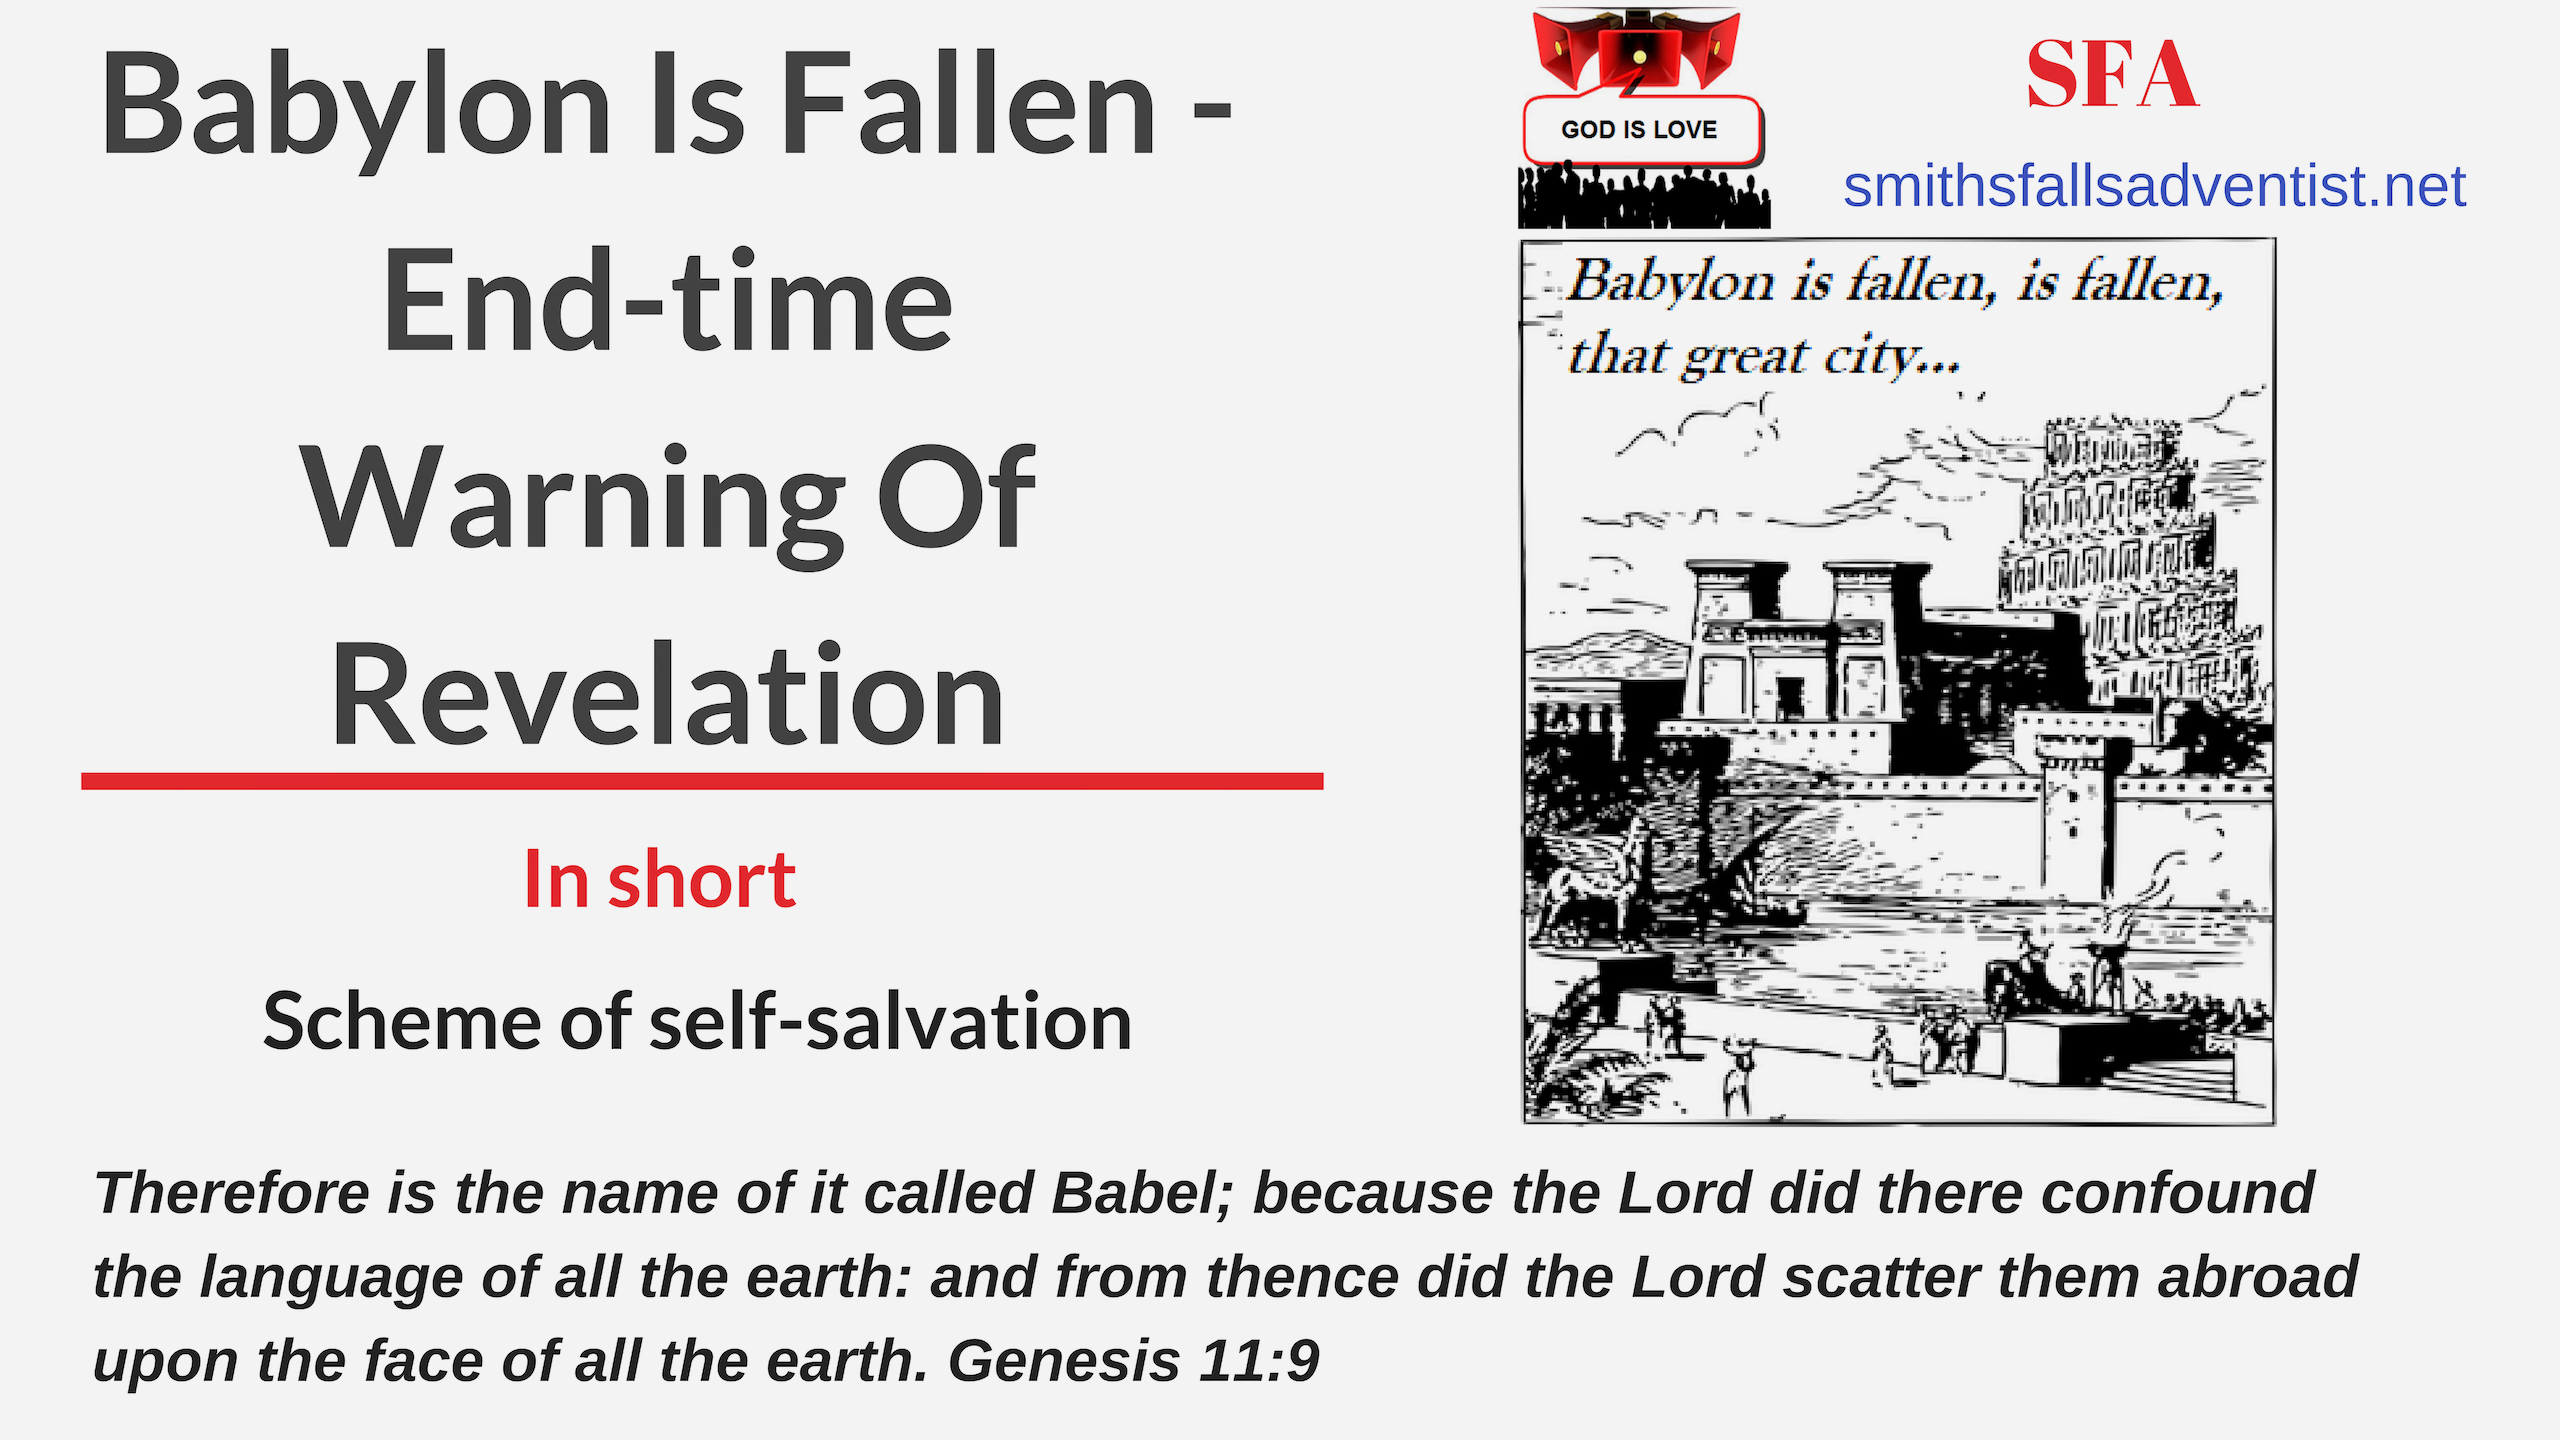 Title-Babylon-Is-Fallen-End-time-Warning-Of-Revelation-text-logo